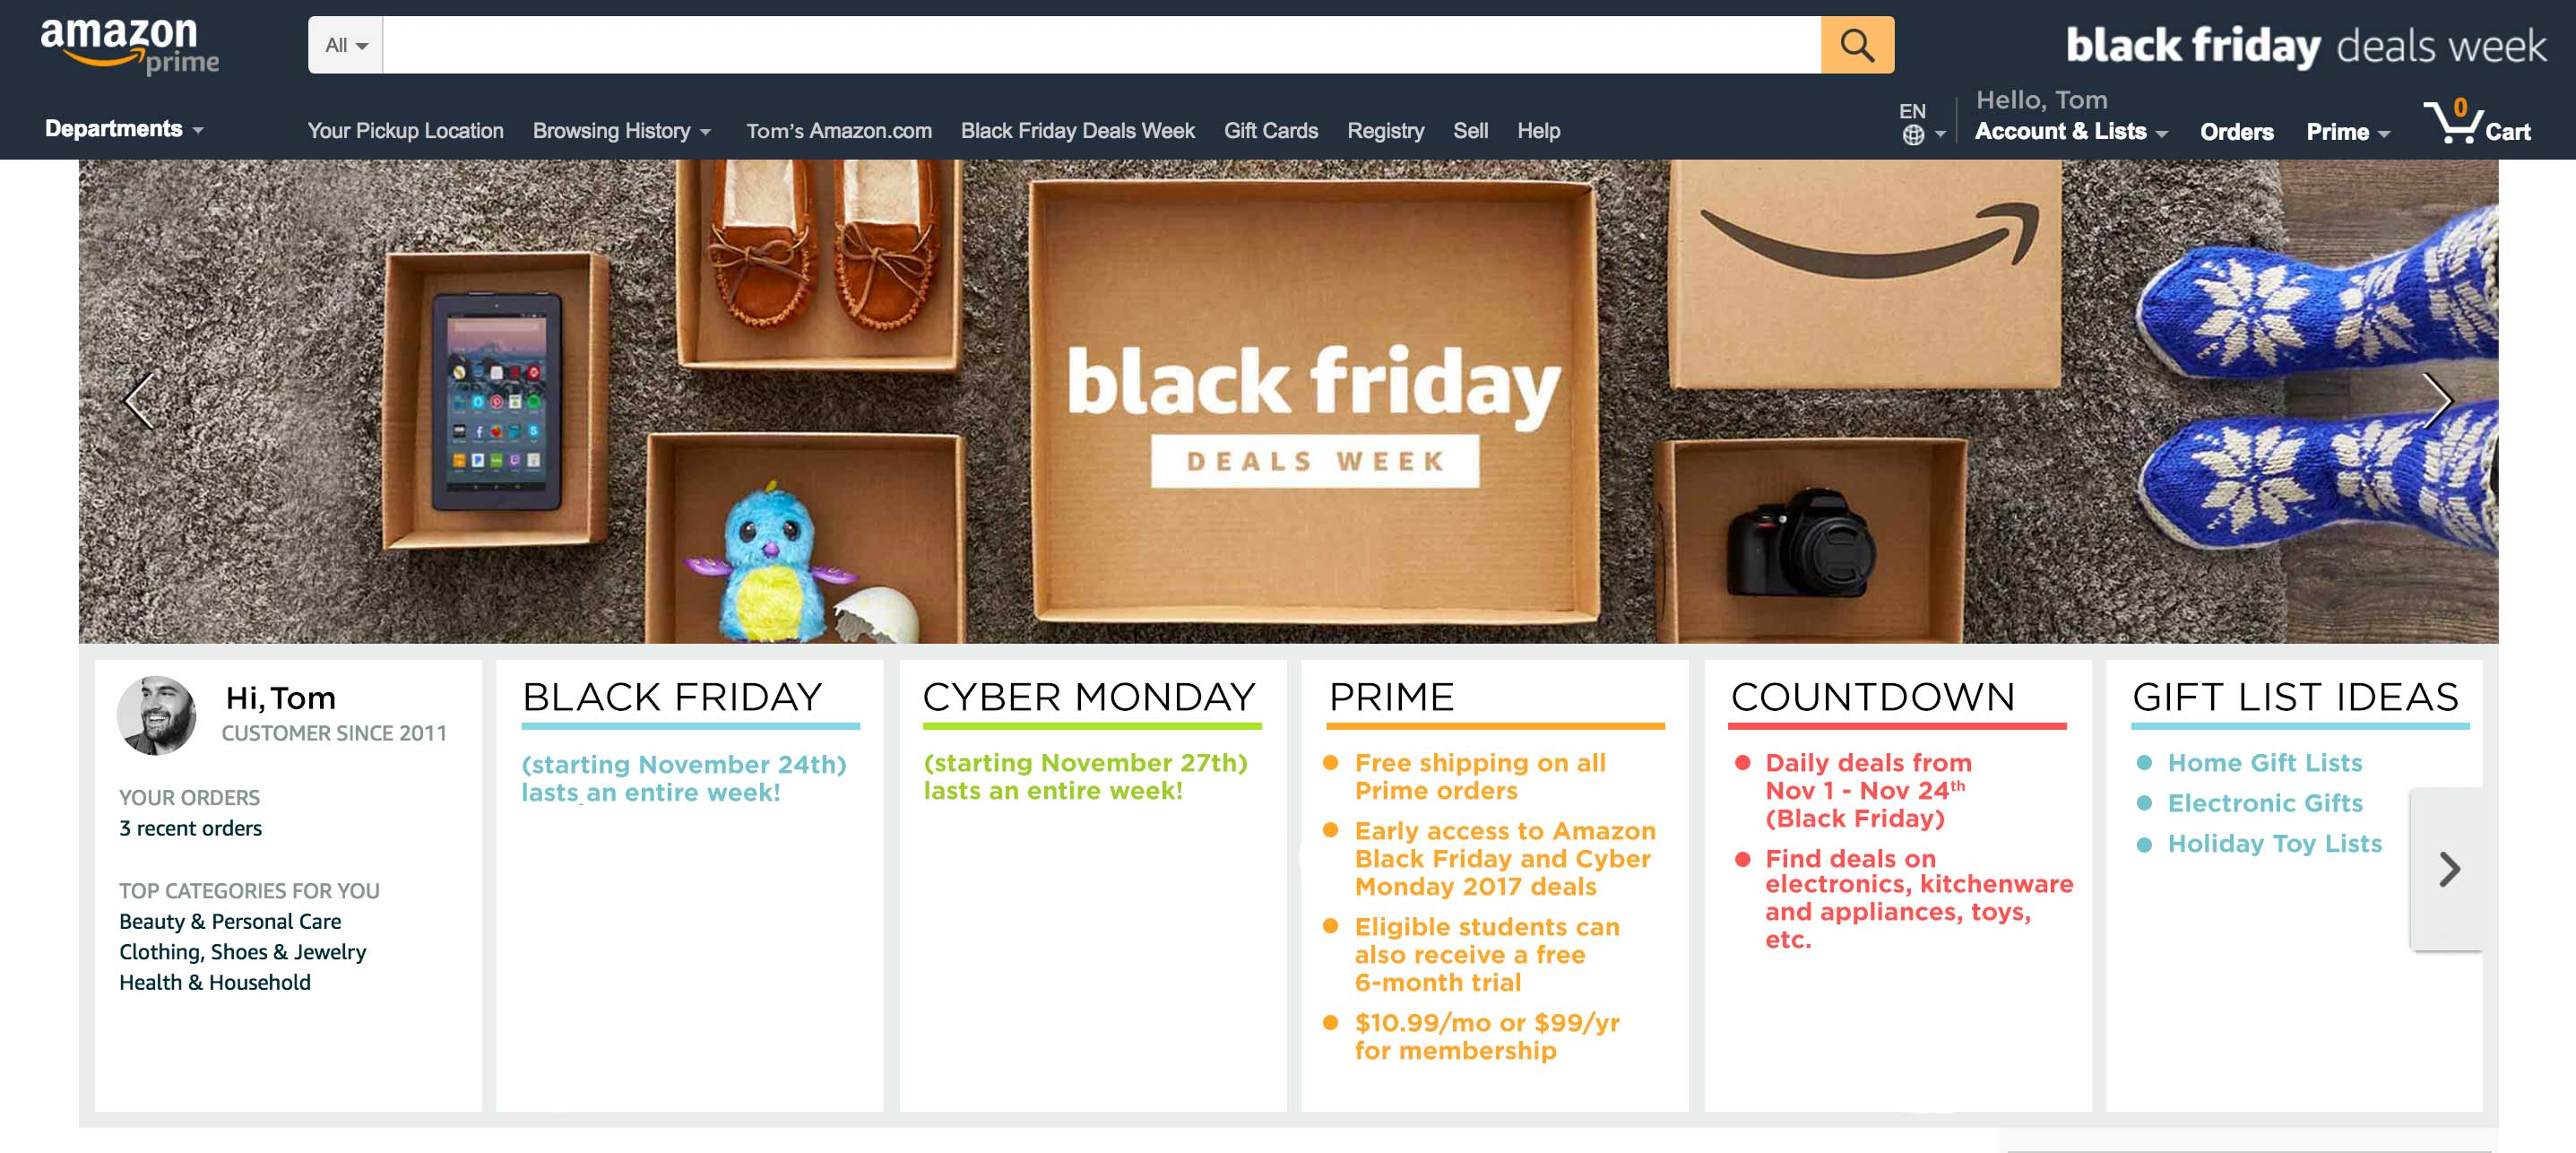 Take advantage of a free, 30-day trial of Amazon Prime: Free shipping on all Prime orders Early access to Amazon Black Friday and Cyber Monday 2017 deals Eligible students can also receive a free 6-month trial Cancel after 30 days if you do not wish to become a member $10.99 per month or $99.00 per year for membership Shop the Countdown to Black Friday: Daily deals from November 1-November 24th (Black Friday) Find deals on electronics, kitchenware and appliances, toys, etc. Black Friday (starting November 24th) lasts an entire week! Cyber Monday (starting November 27th) lasts an entire week! Choose gifts on Amazon's premade holiday gift lists Home gift lists Electronic Gifts Holiday Toy Lists | blog.phmc.com